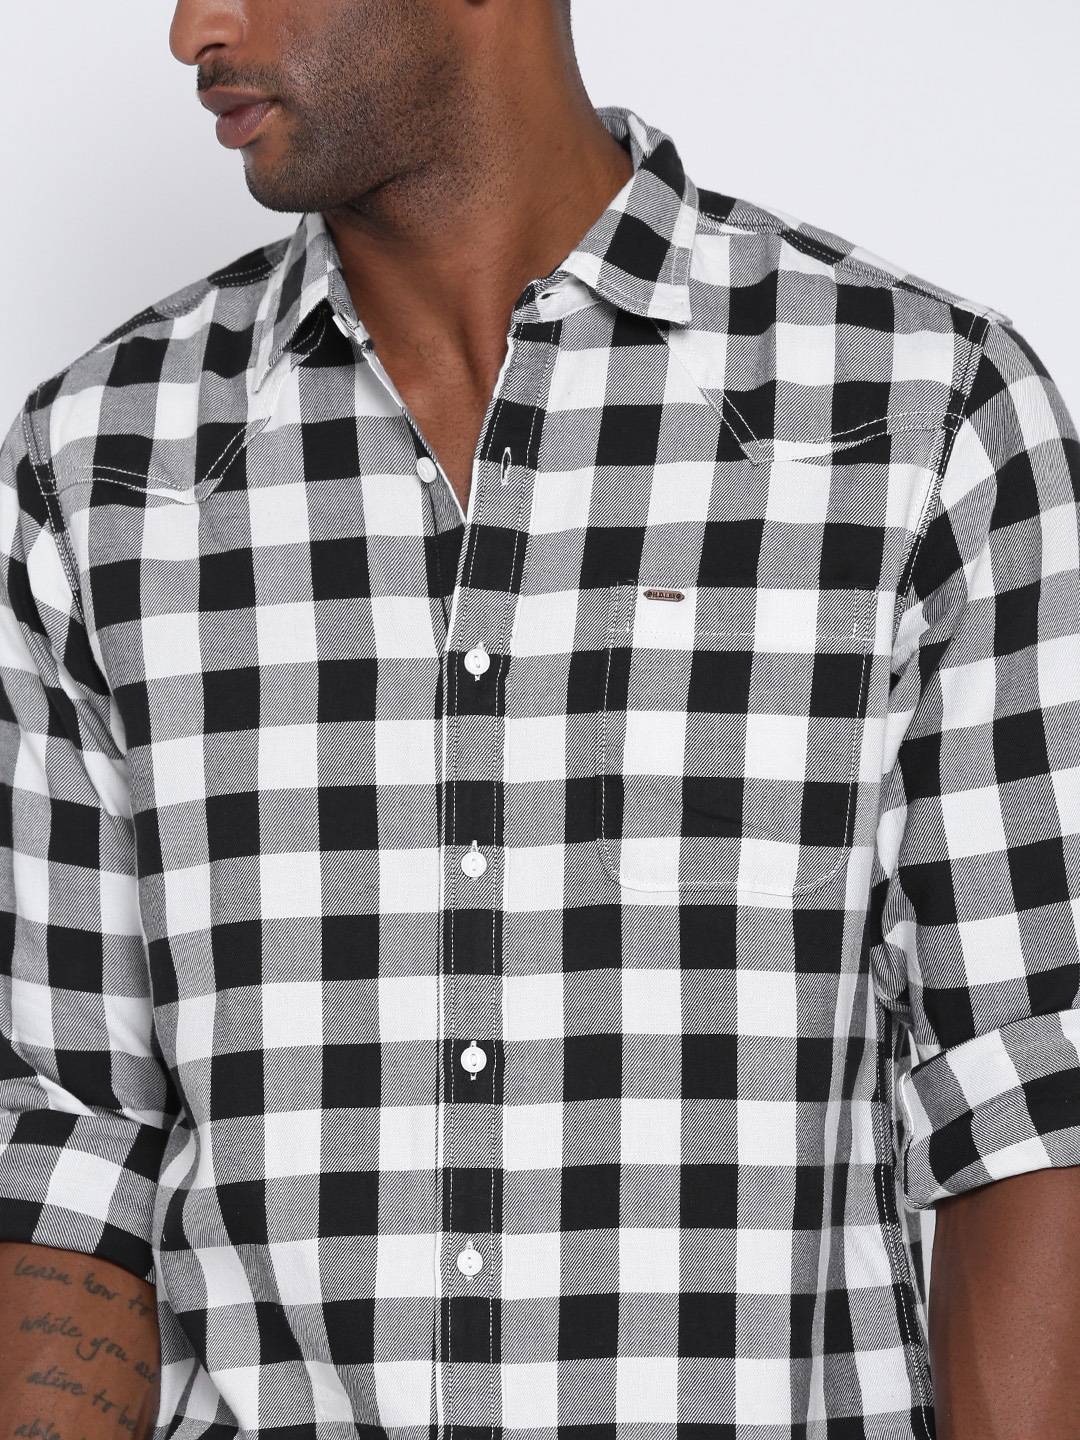 Black and white checkered blouse breeze clothing for Black and white checker shirt